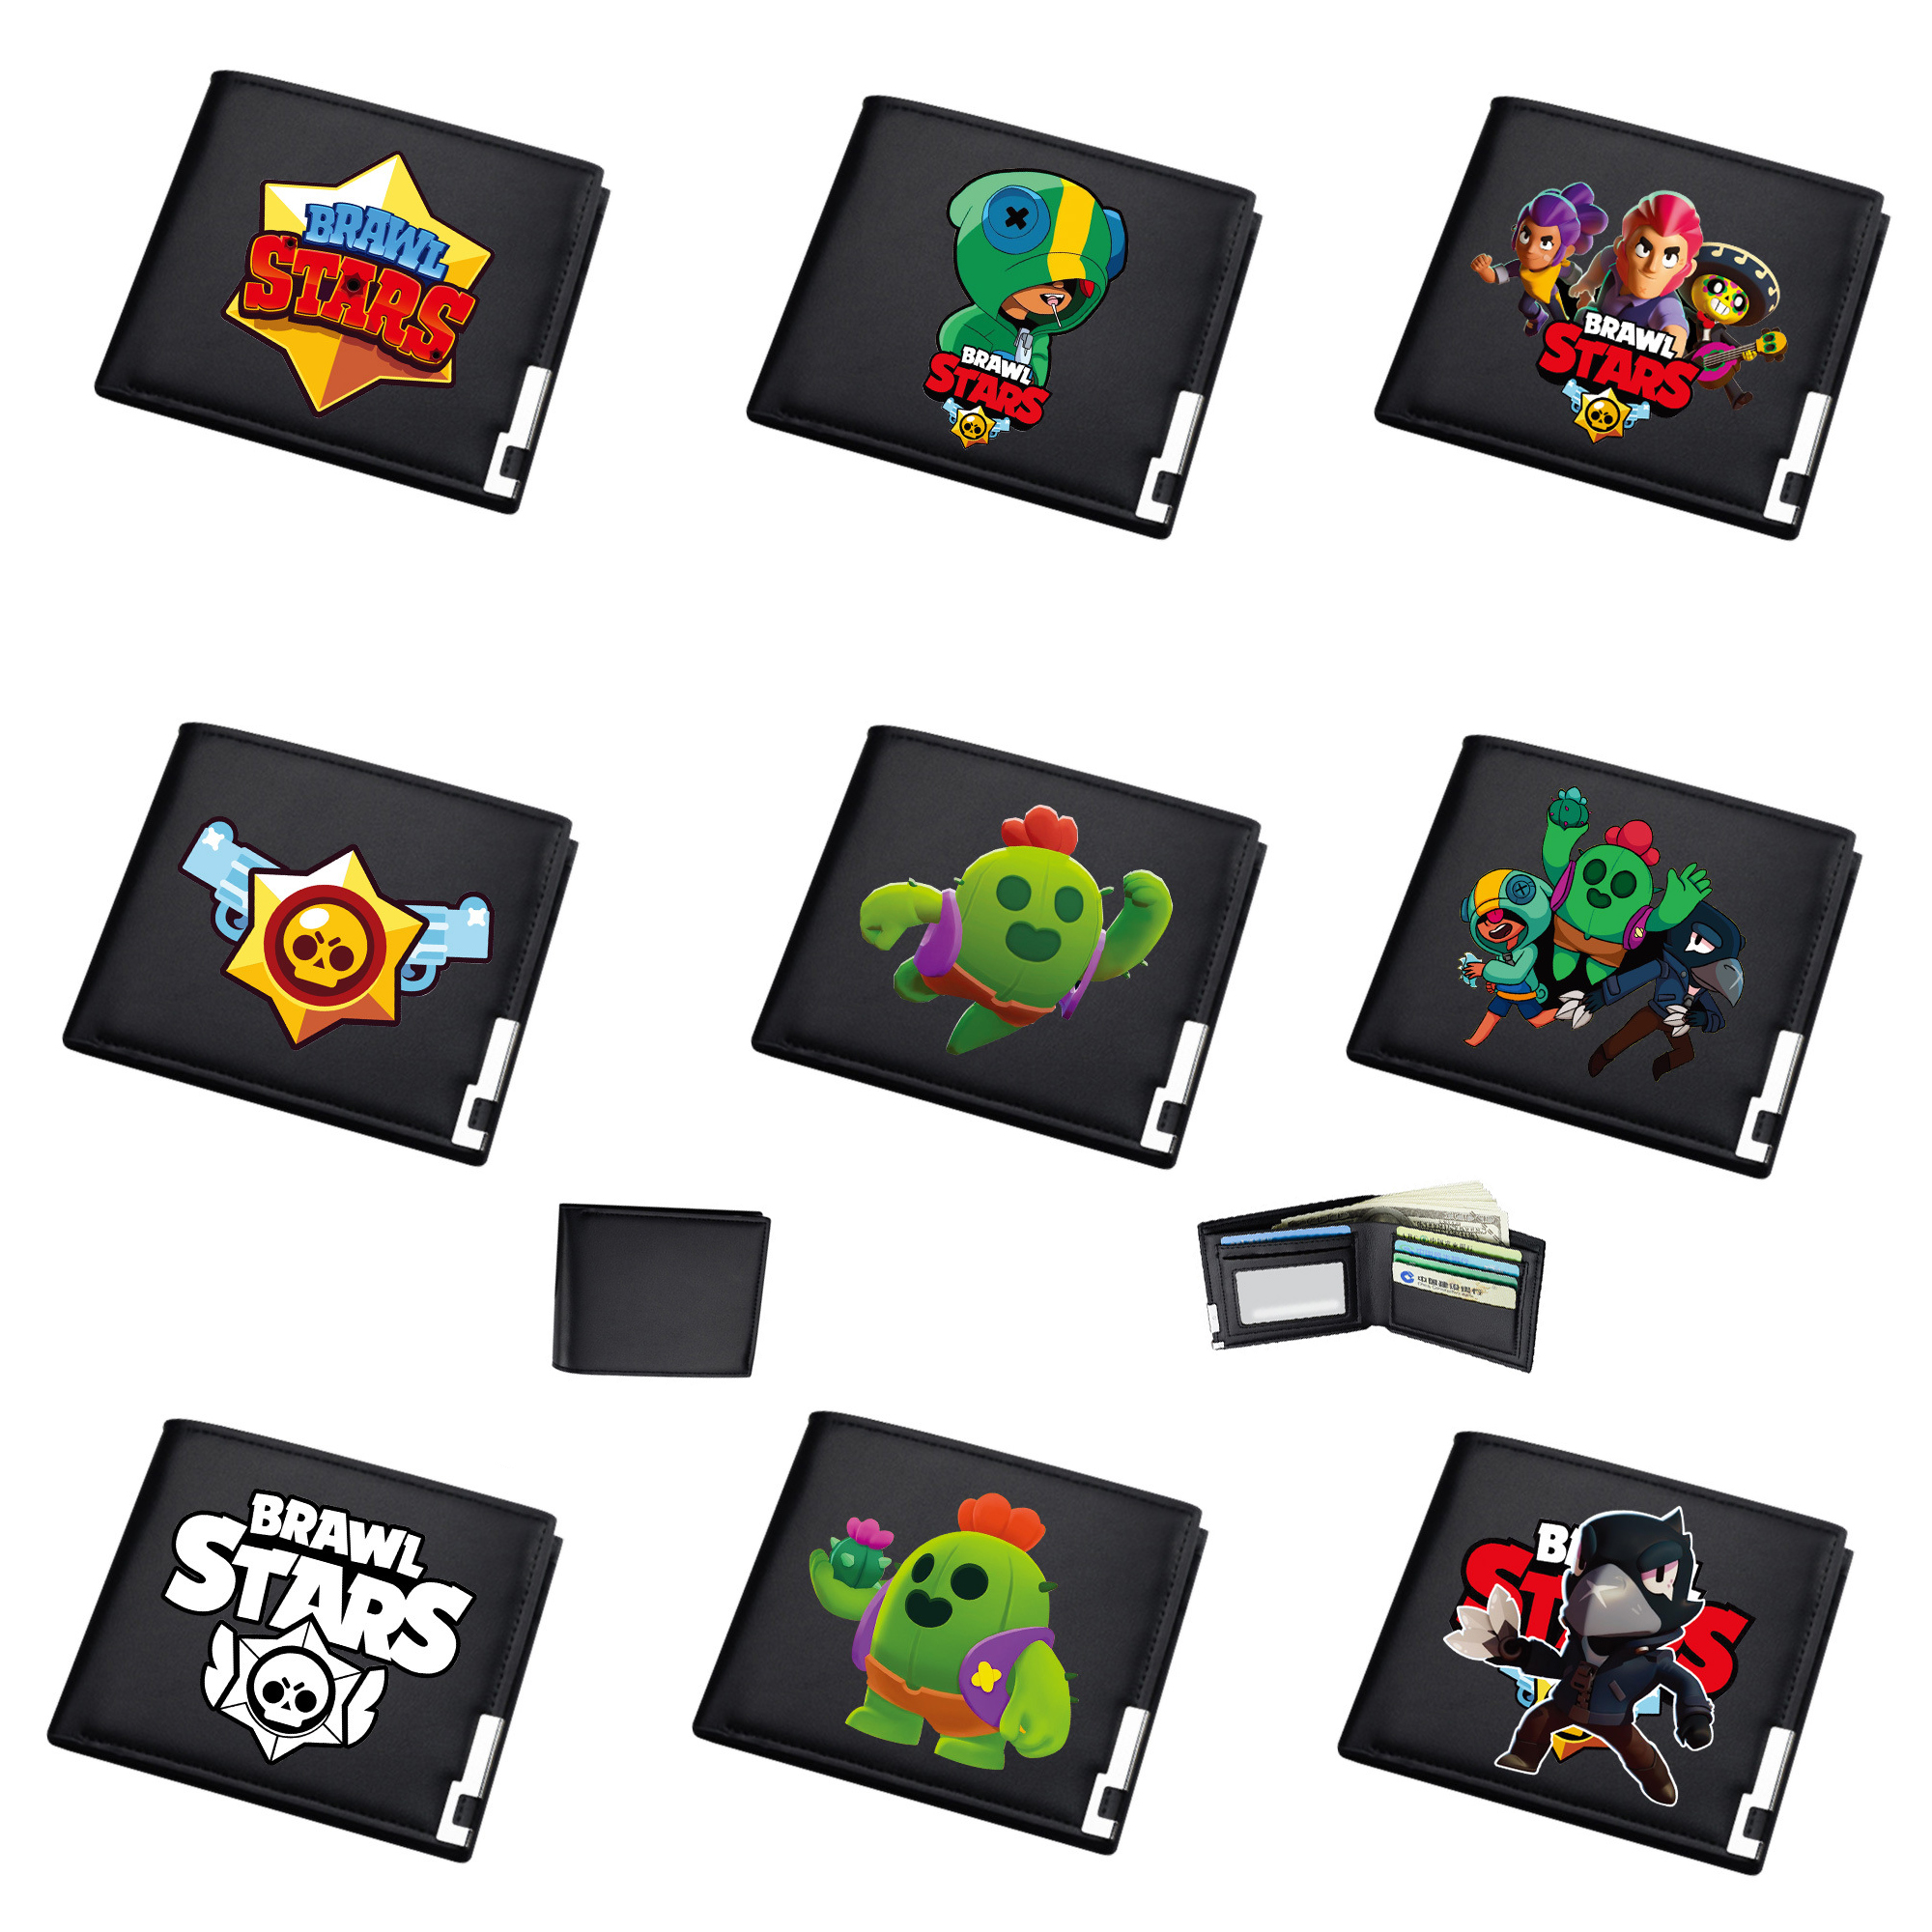 BrawlING Games StarS Wallet Hot Sale Animated Cartoon Fashion Brand Purse Young Boys Purse Personality Man Bad Card Coin Wallet